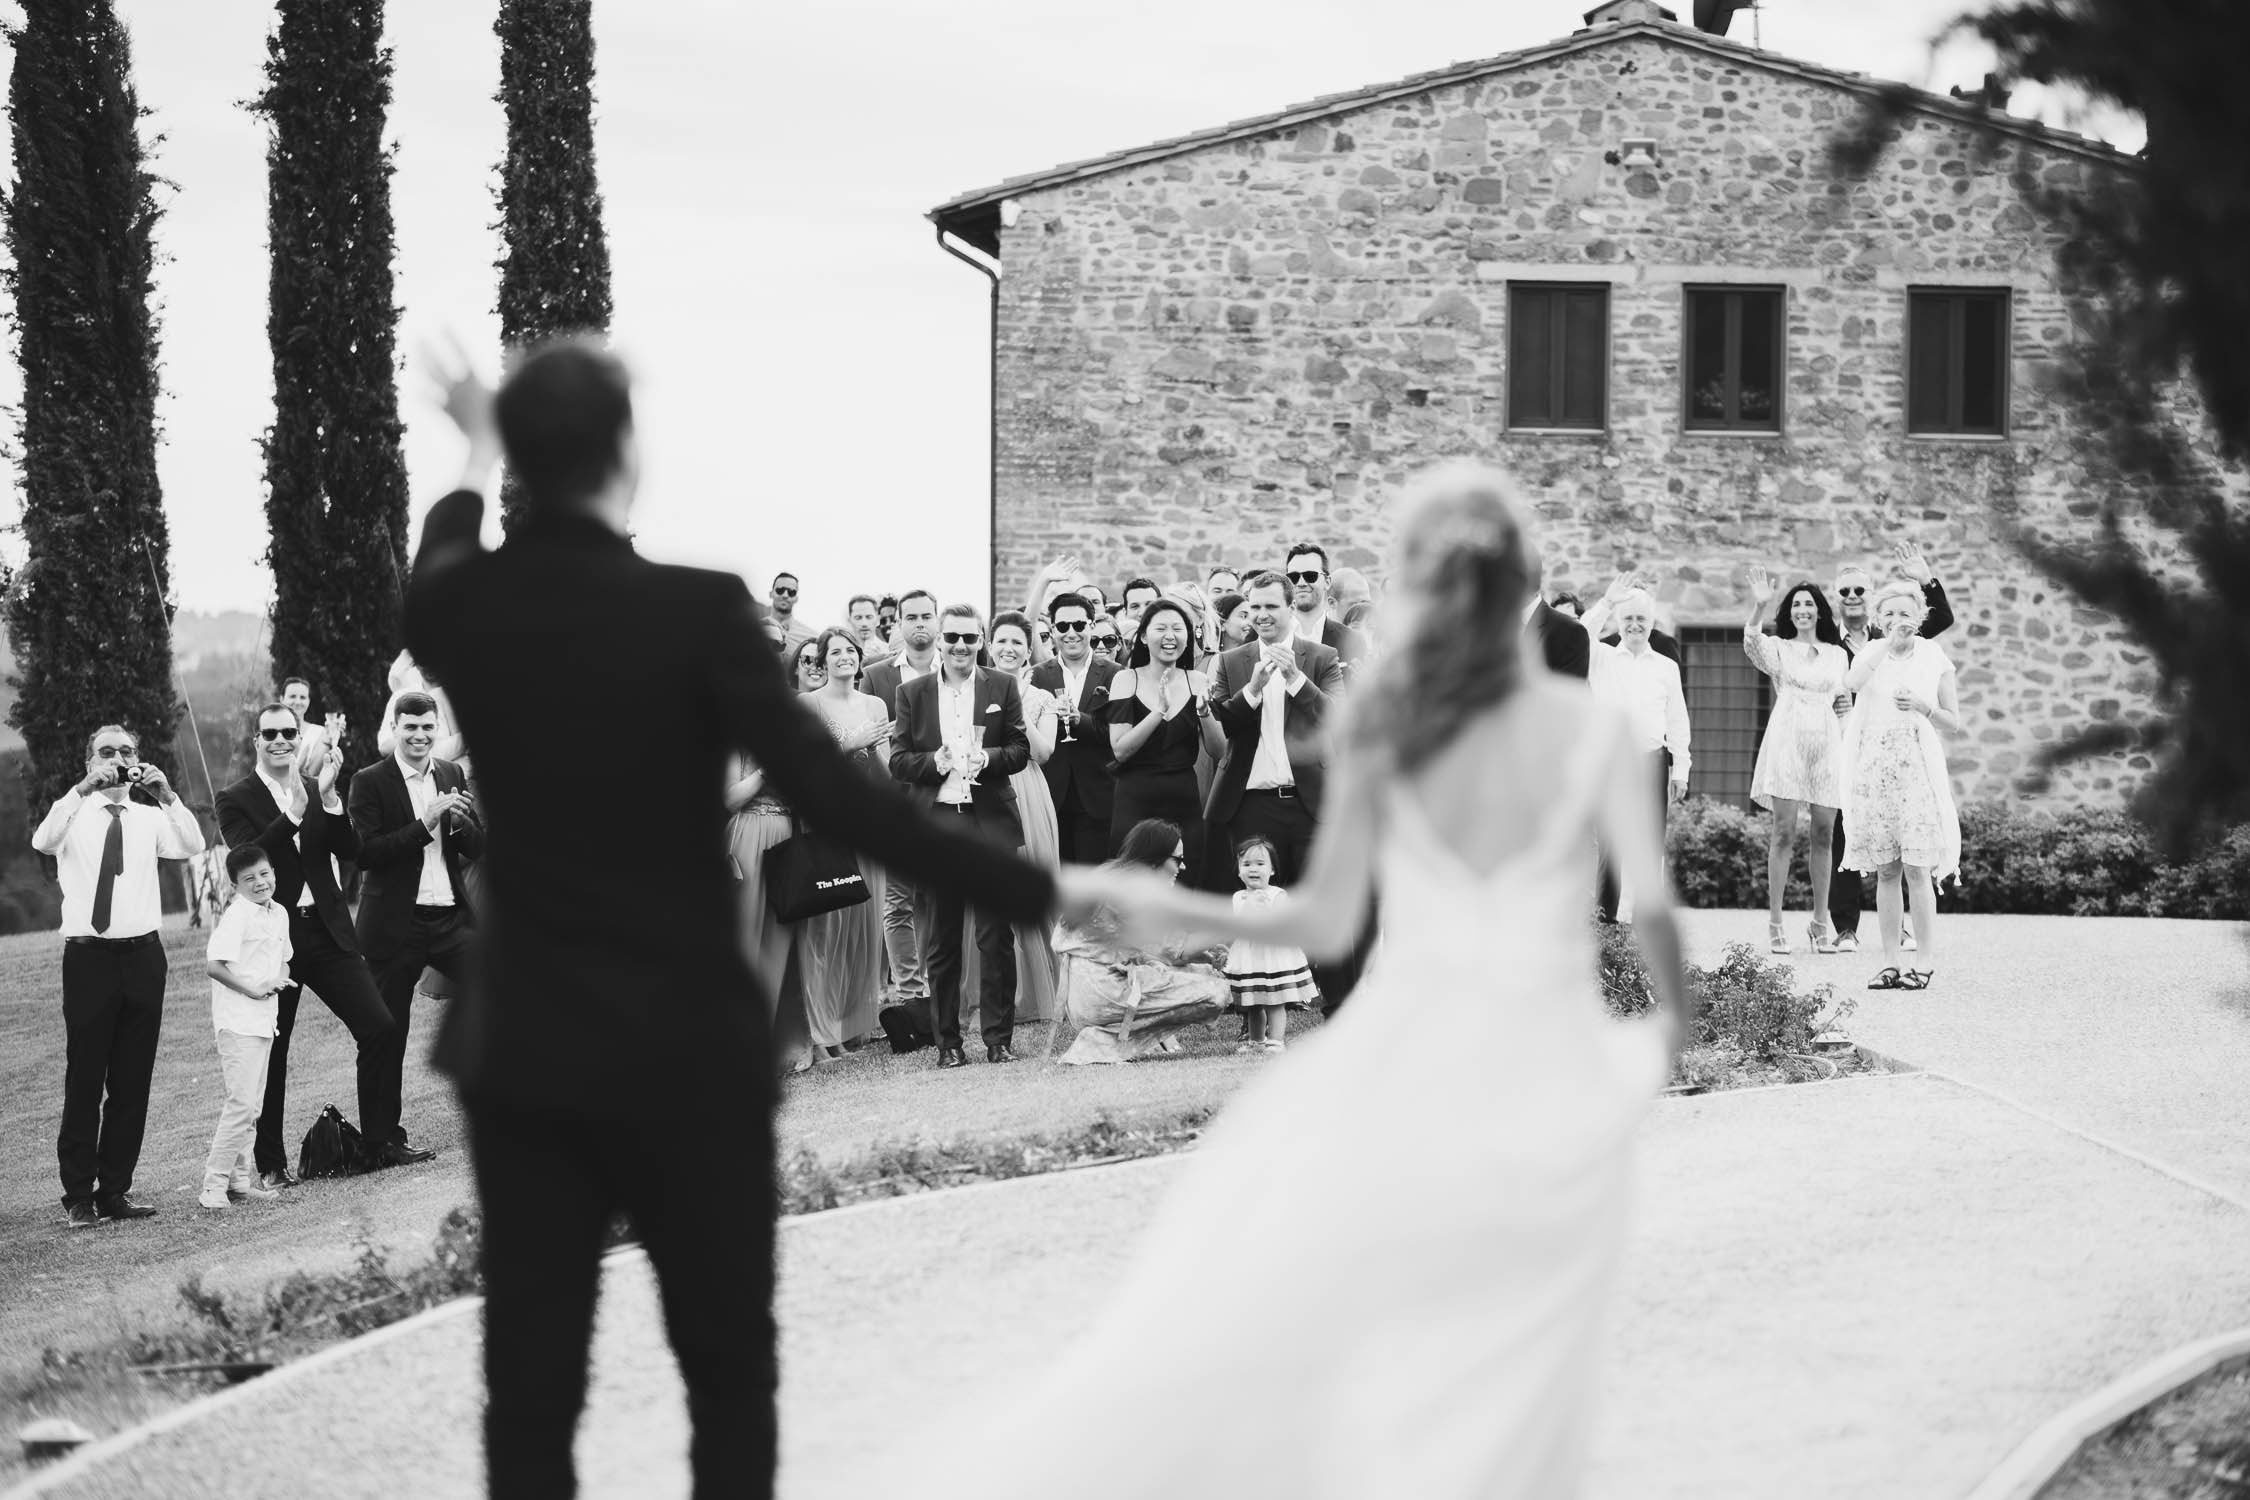 Beautiful moment during bride and groom arrive at wedding venue for the reception at Agriturismo La Casetta